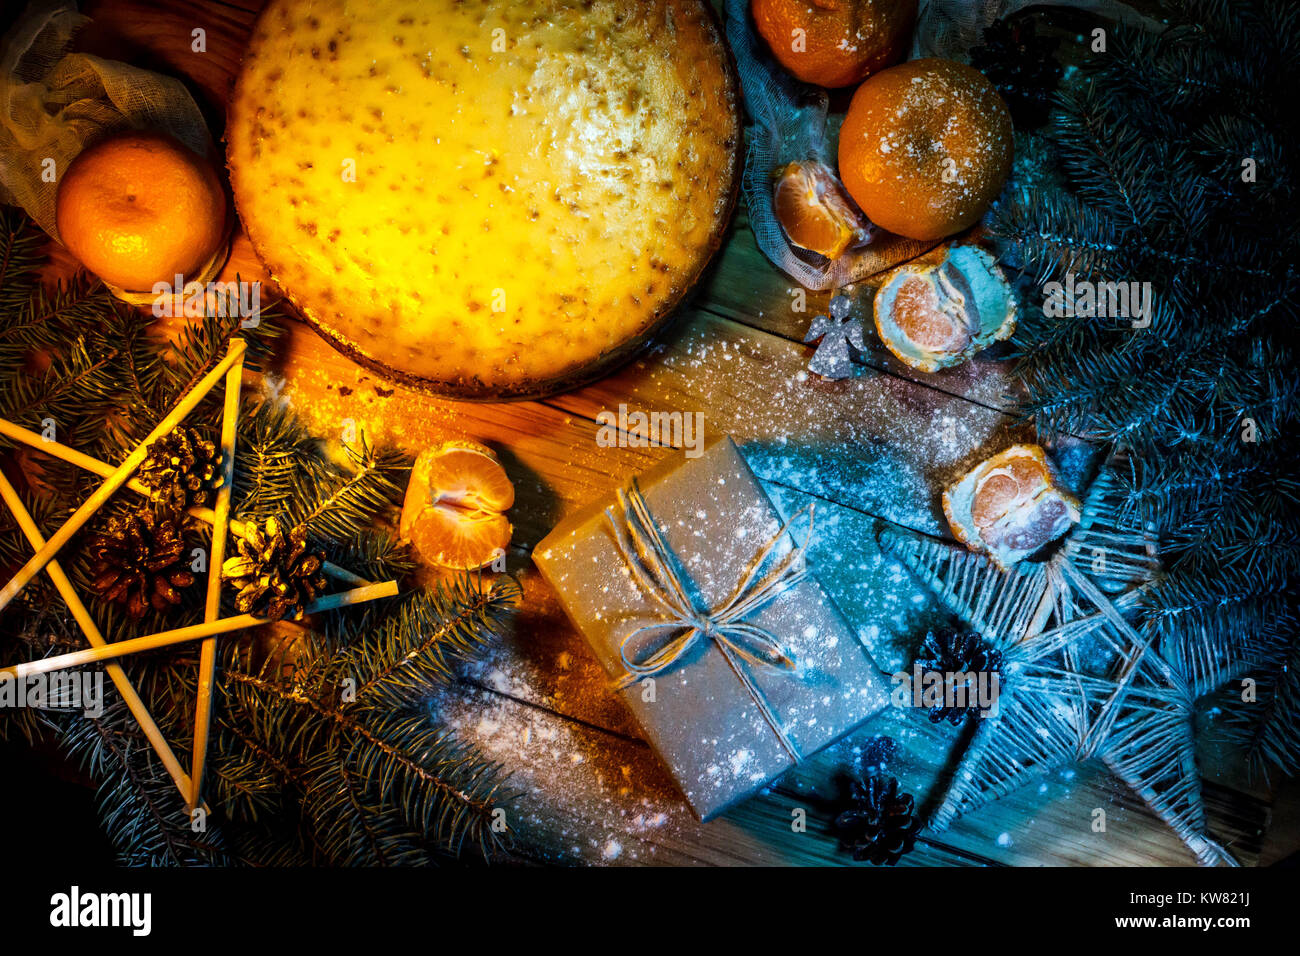 Cheese cake against wooden background with oranges, gift box and christmas decoration. - Stock Image